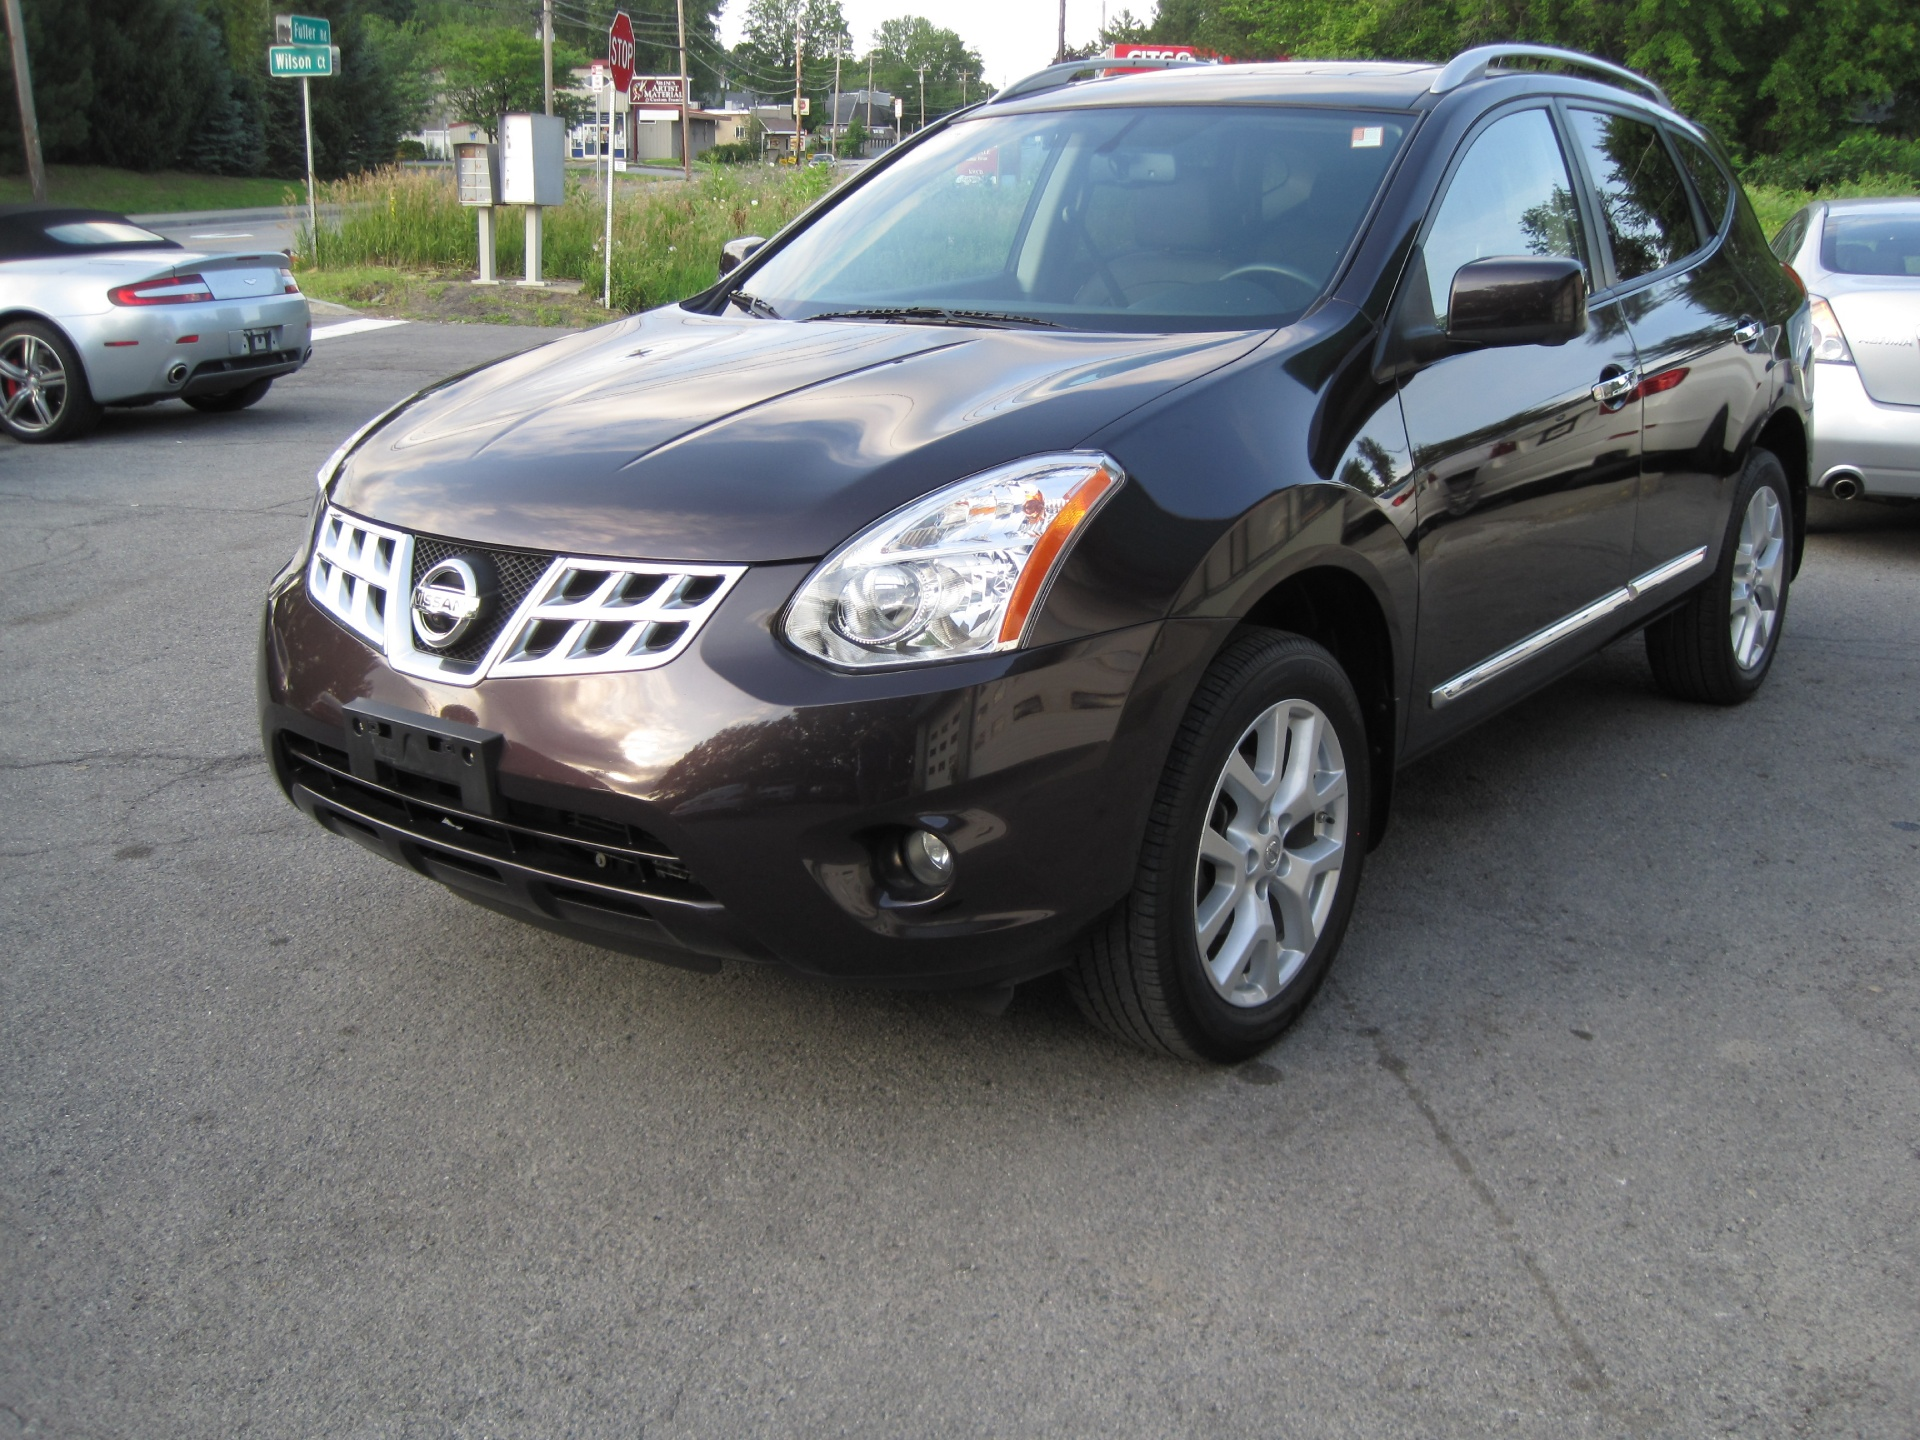 2013 nissan rogue sv wsl package loadedleatherxenonssunroof used 2013 nissan rogue sv wsl package loadedleatherxenonssunroof vanachro Images